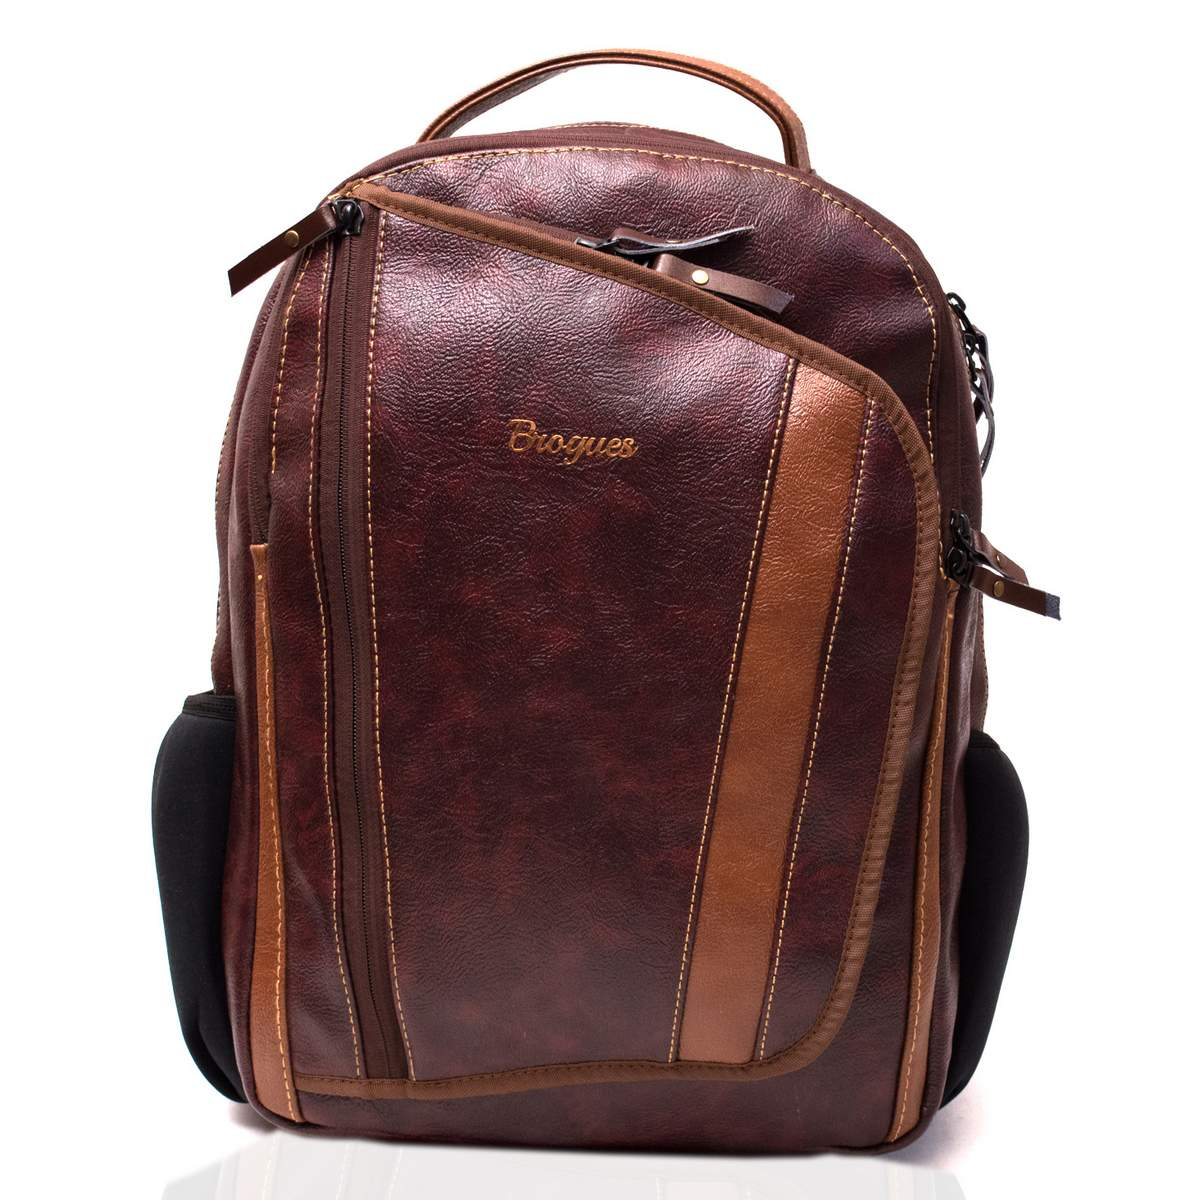 Brogues Cork Leather Laptop Backpack Bag - Sunrise Trading Co ... d9424a2911e7a